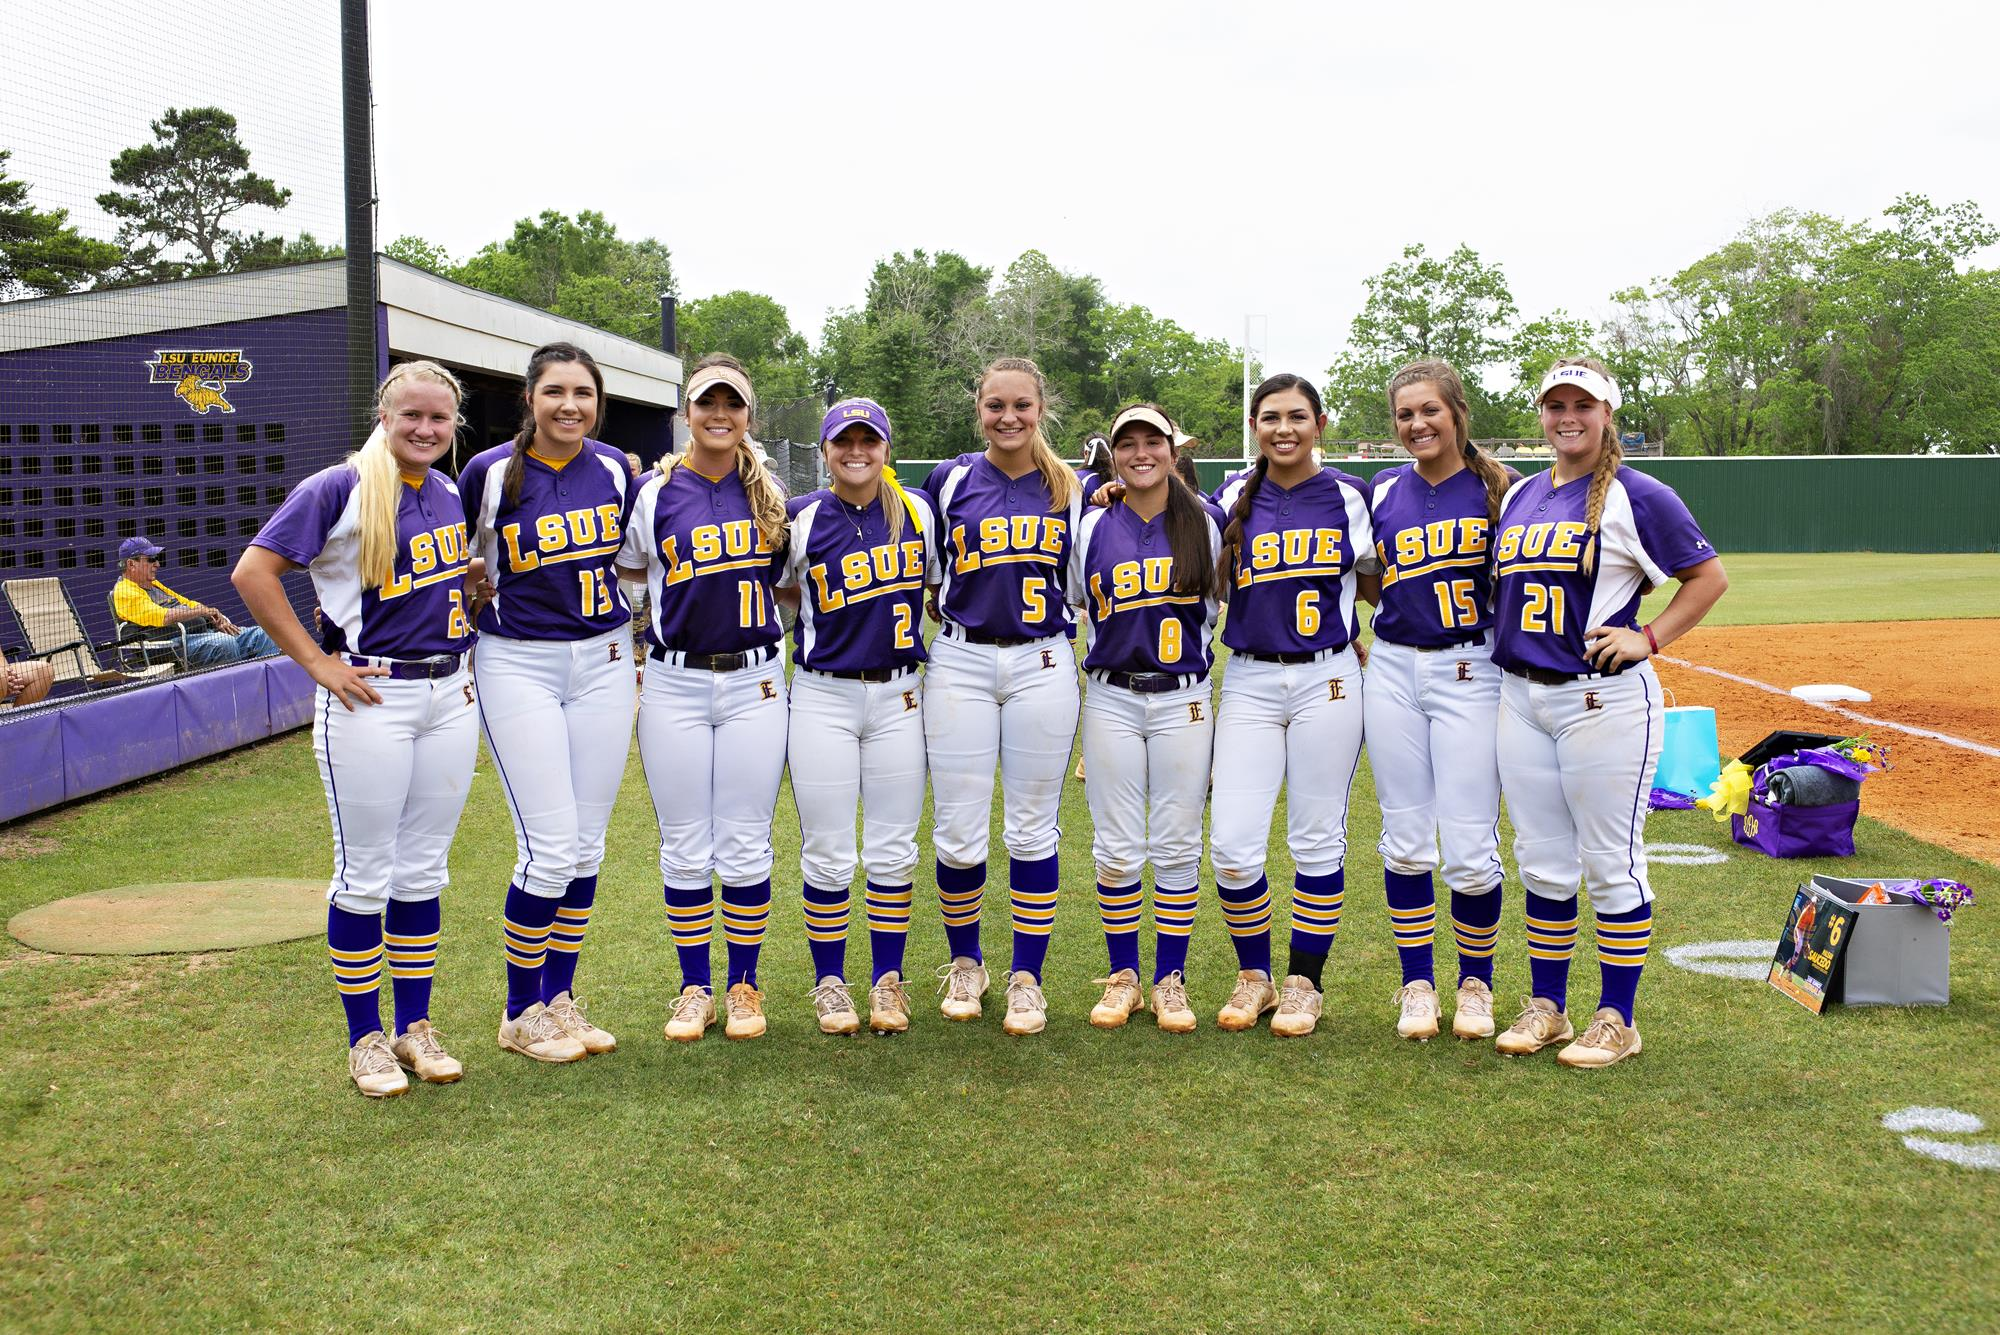 sophomores get sendoff sweep vs. brcc - louisiana state university